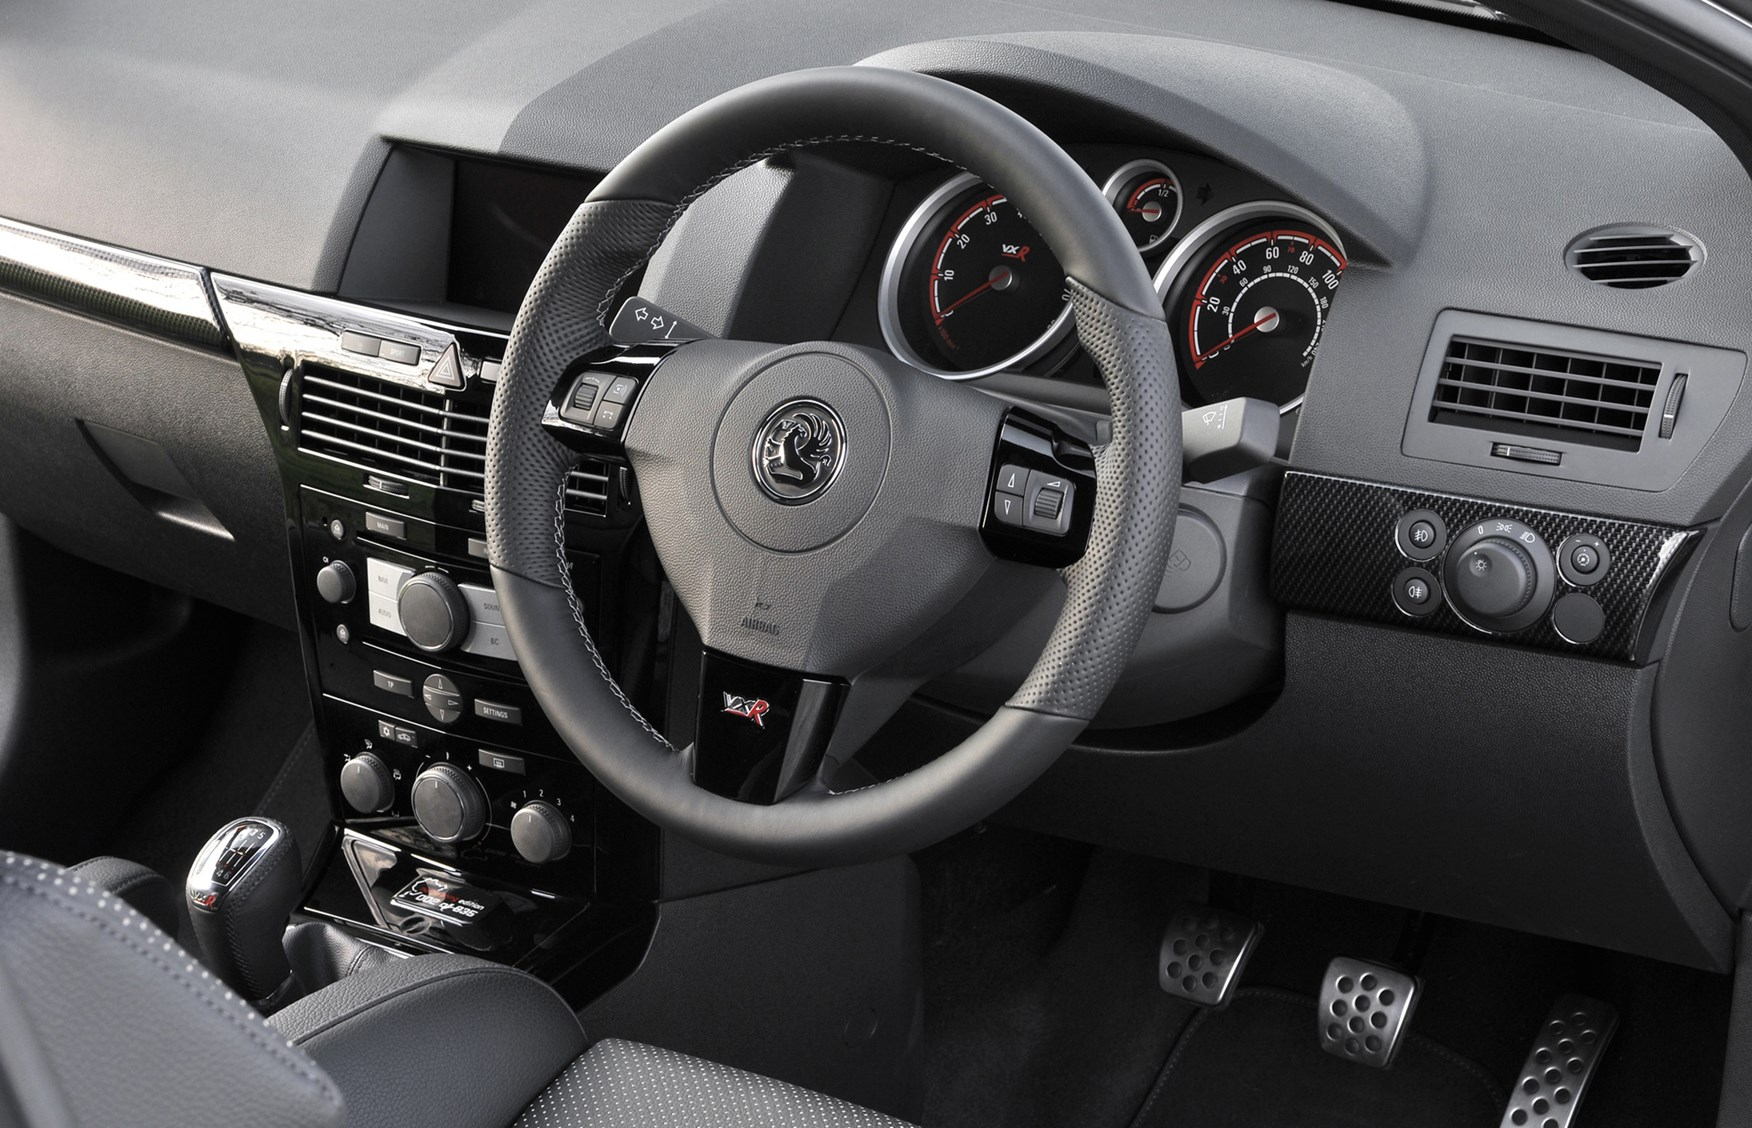 Vauxhall Astra VXR Review (2005 - 2010) | Parkers  Vauxhall Astra Vxr Interior